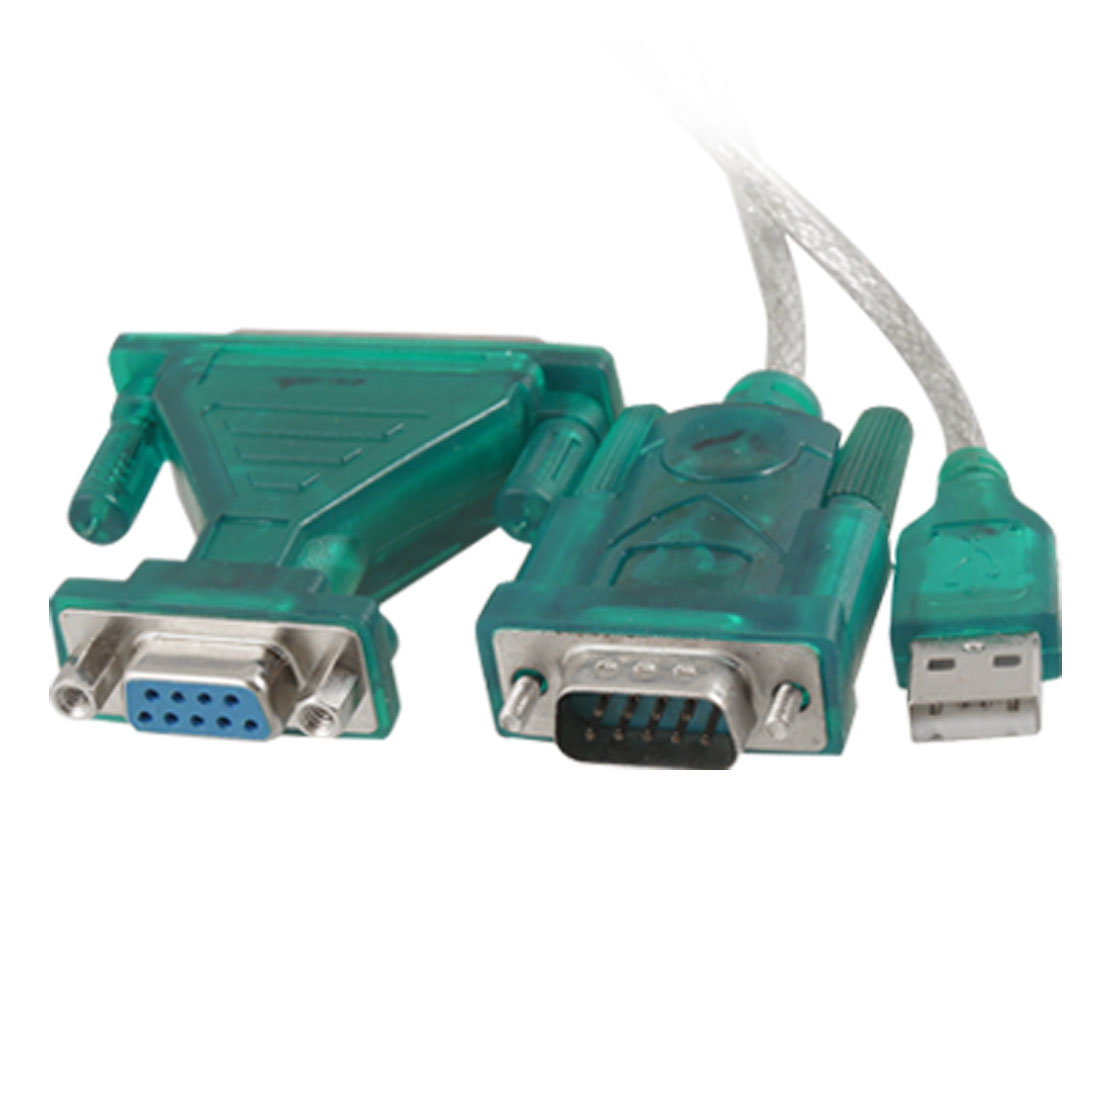 USB to RS232 Serial 9 Pin Adapter Cable w DB9 Female to DB25 Male Connector Green 1M Long